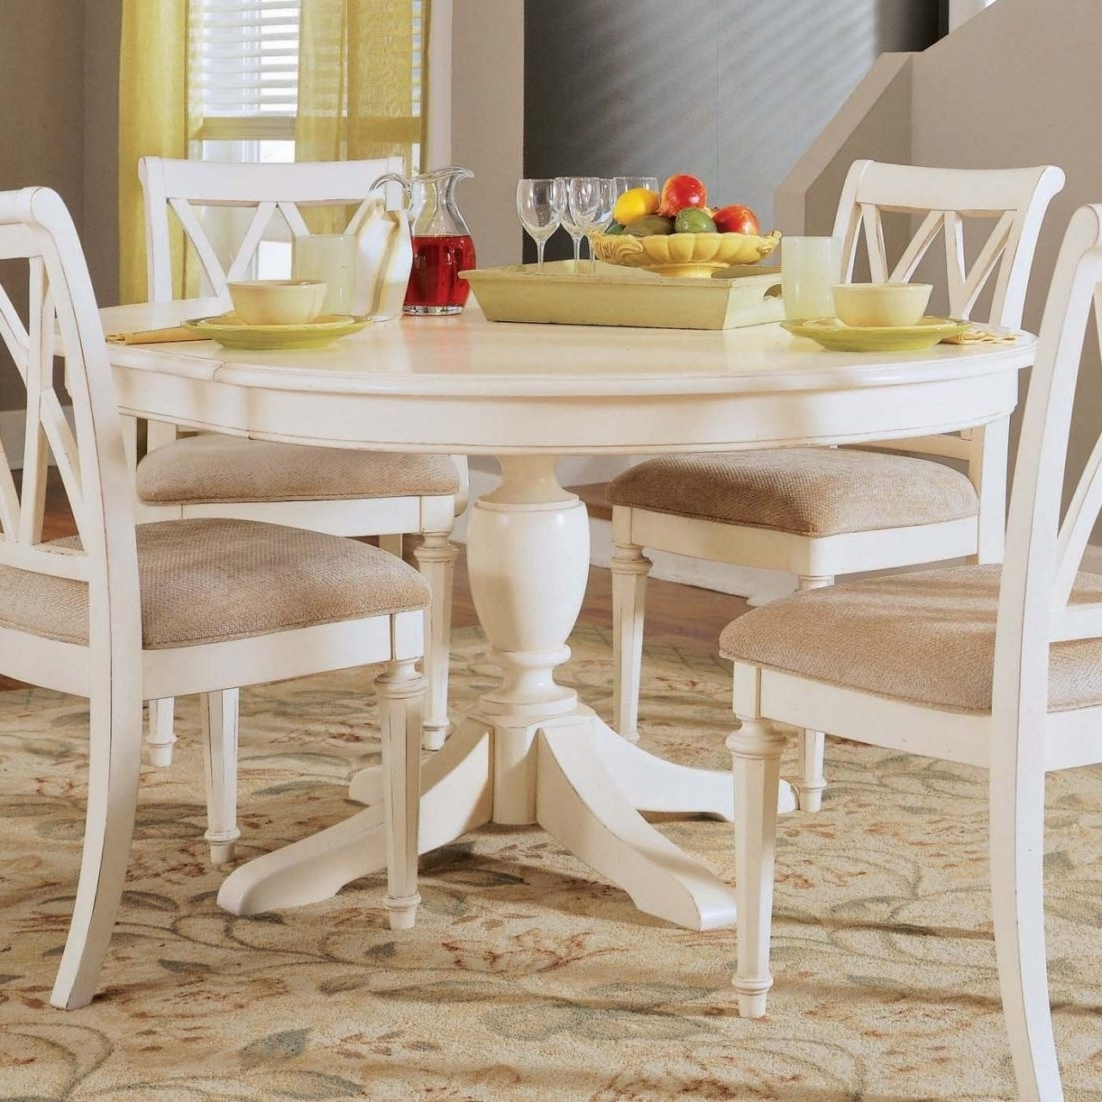 Most Recent Small White Dining Tables Regarding Dining Room Round White Table And Chairs Grey Small Kitchen Sets (View 24 of 25)